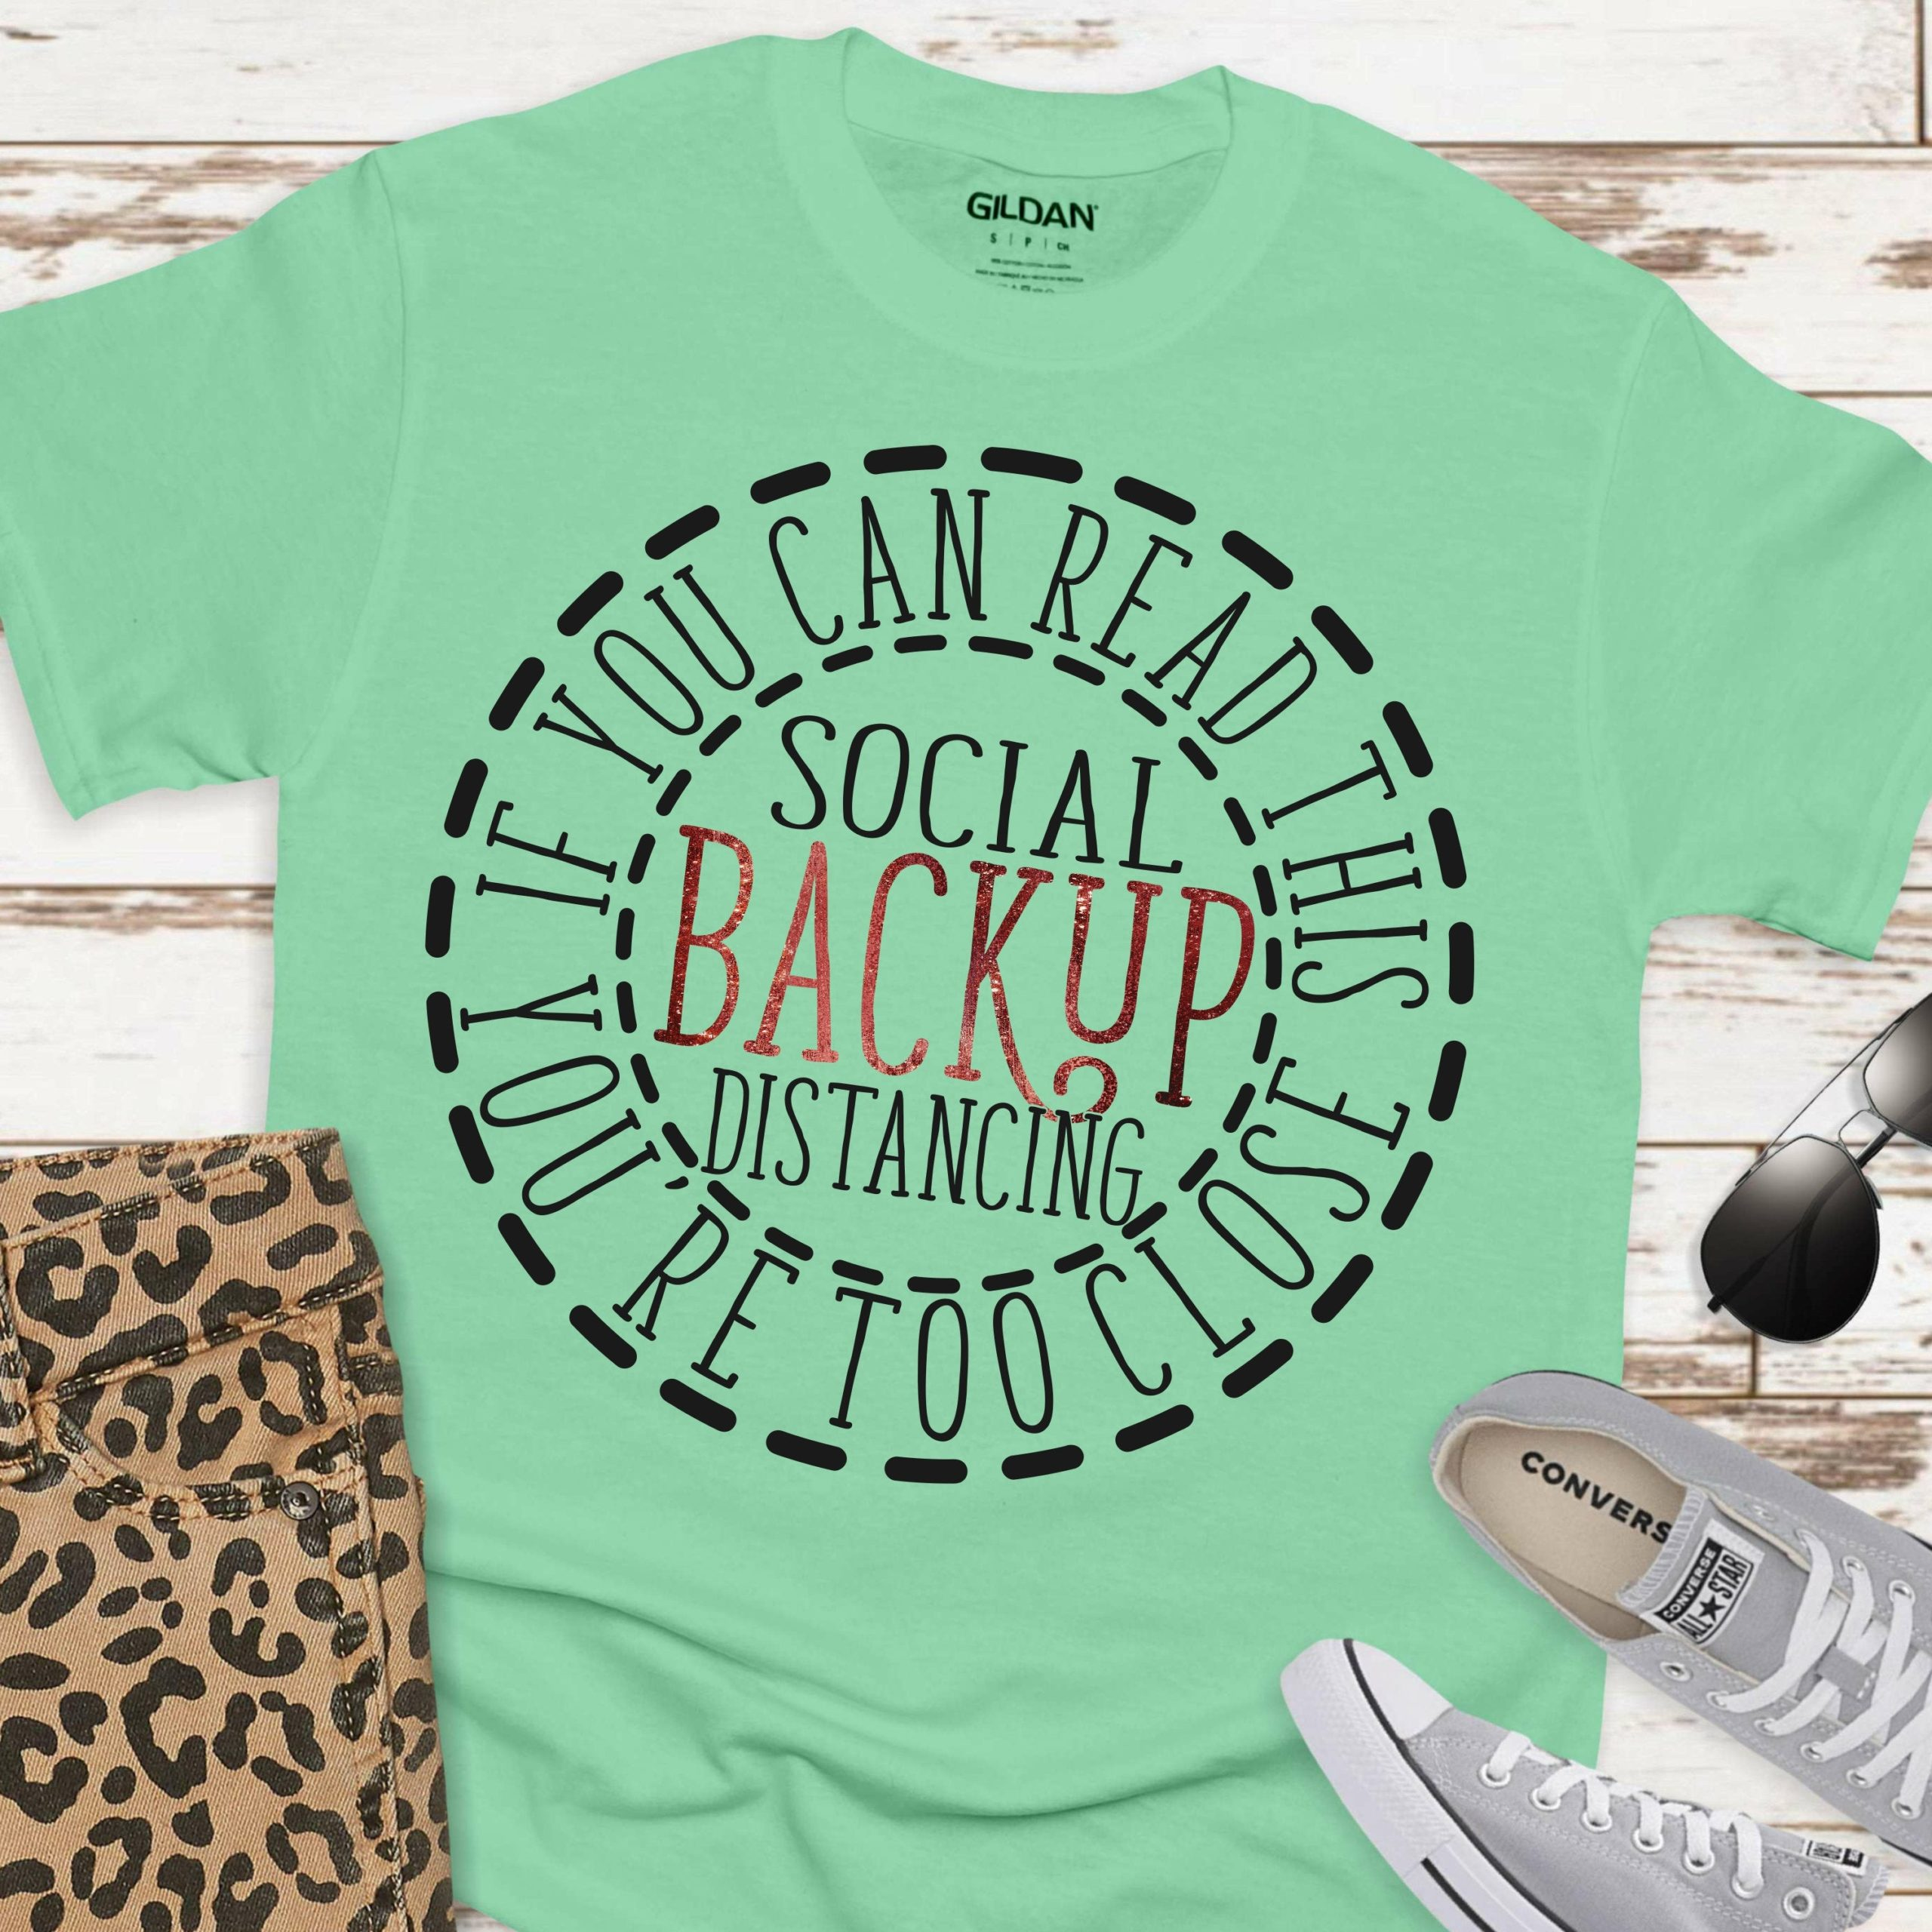 Social-distance-svg-if-you-can-read-this-youre-too-close-svg-quarantine-svg-social-distancing-svg-tshirt-cricut-svg-silhouette-design-5ef78ed6